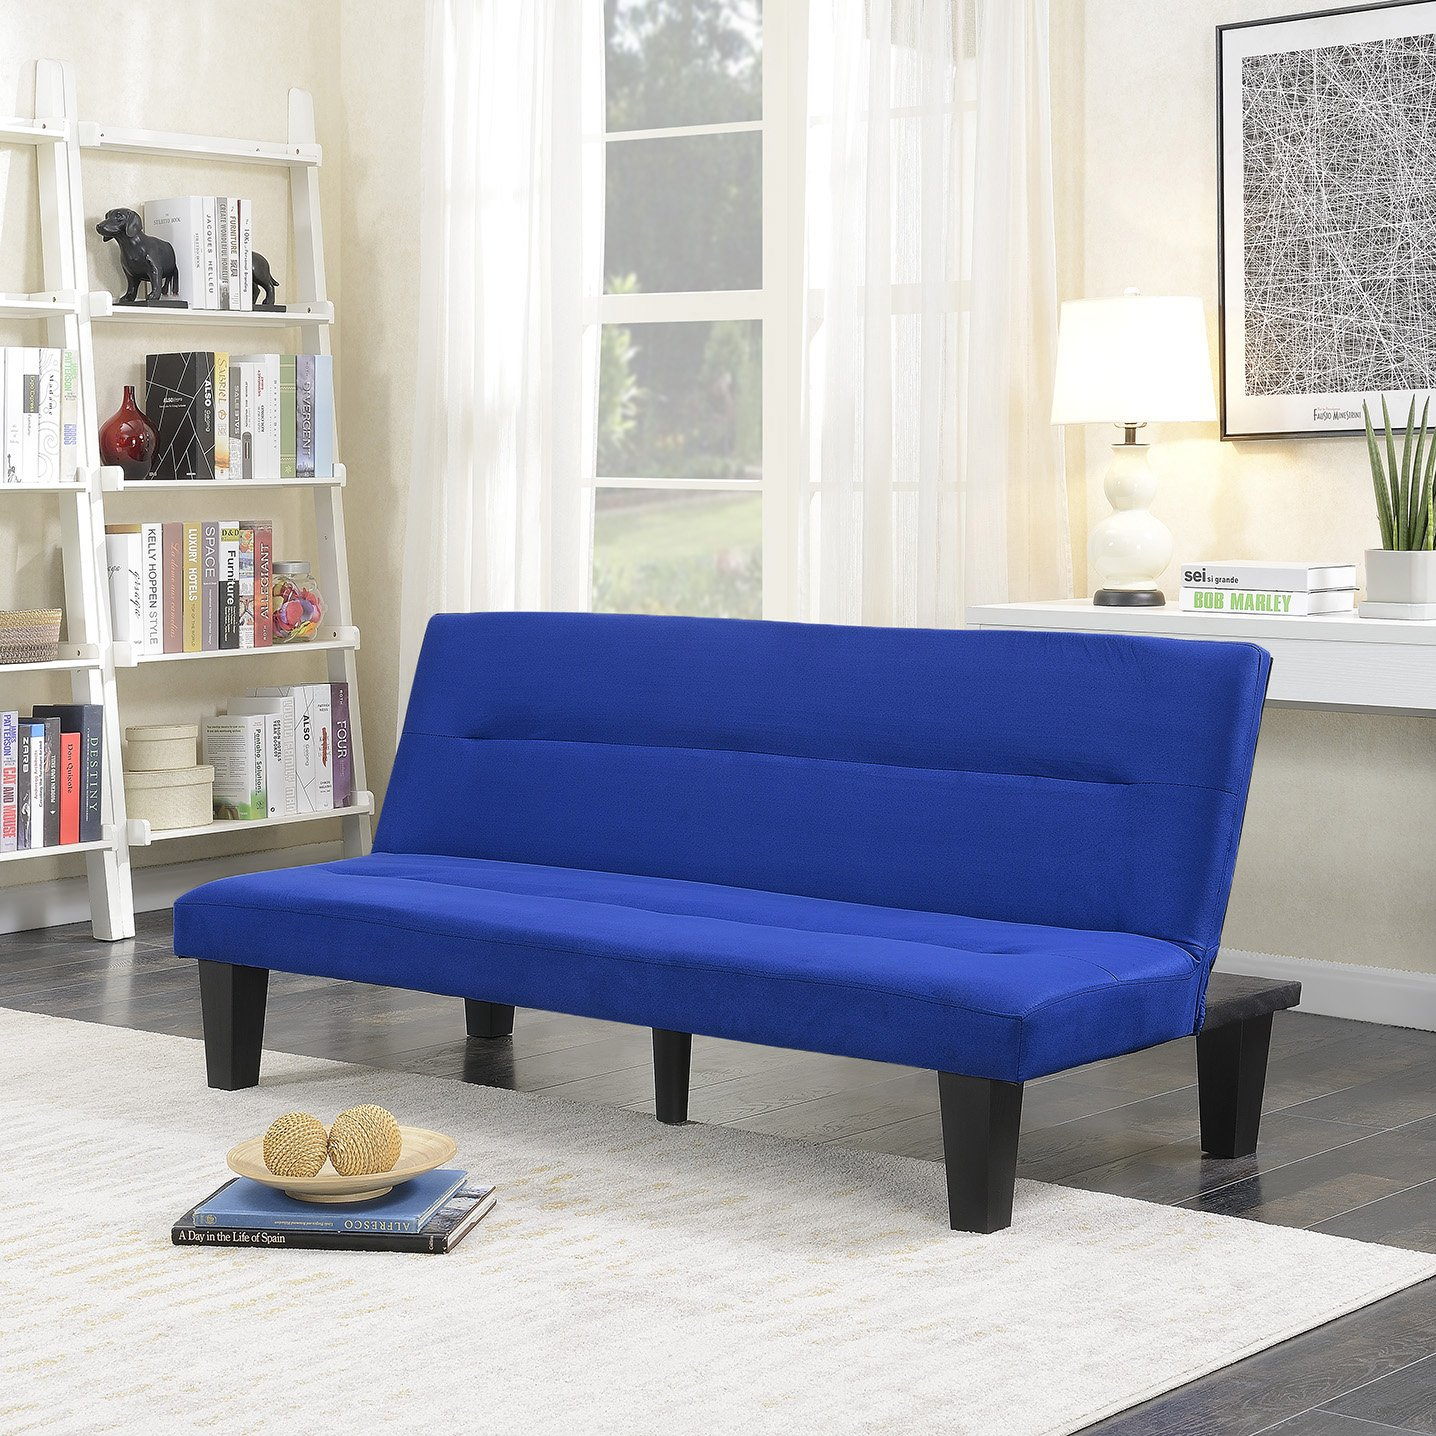 Belleze Convertible Sofa Adjustable Cushion Seat Backrest Futon Bed Legs Upholstered Microfiber Sleeper Adjustable, Blue